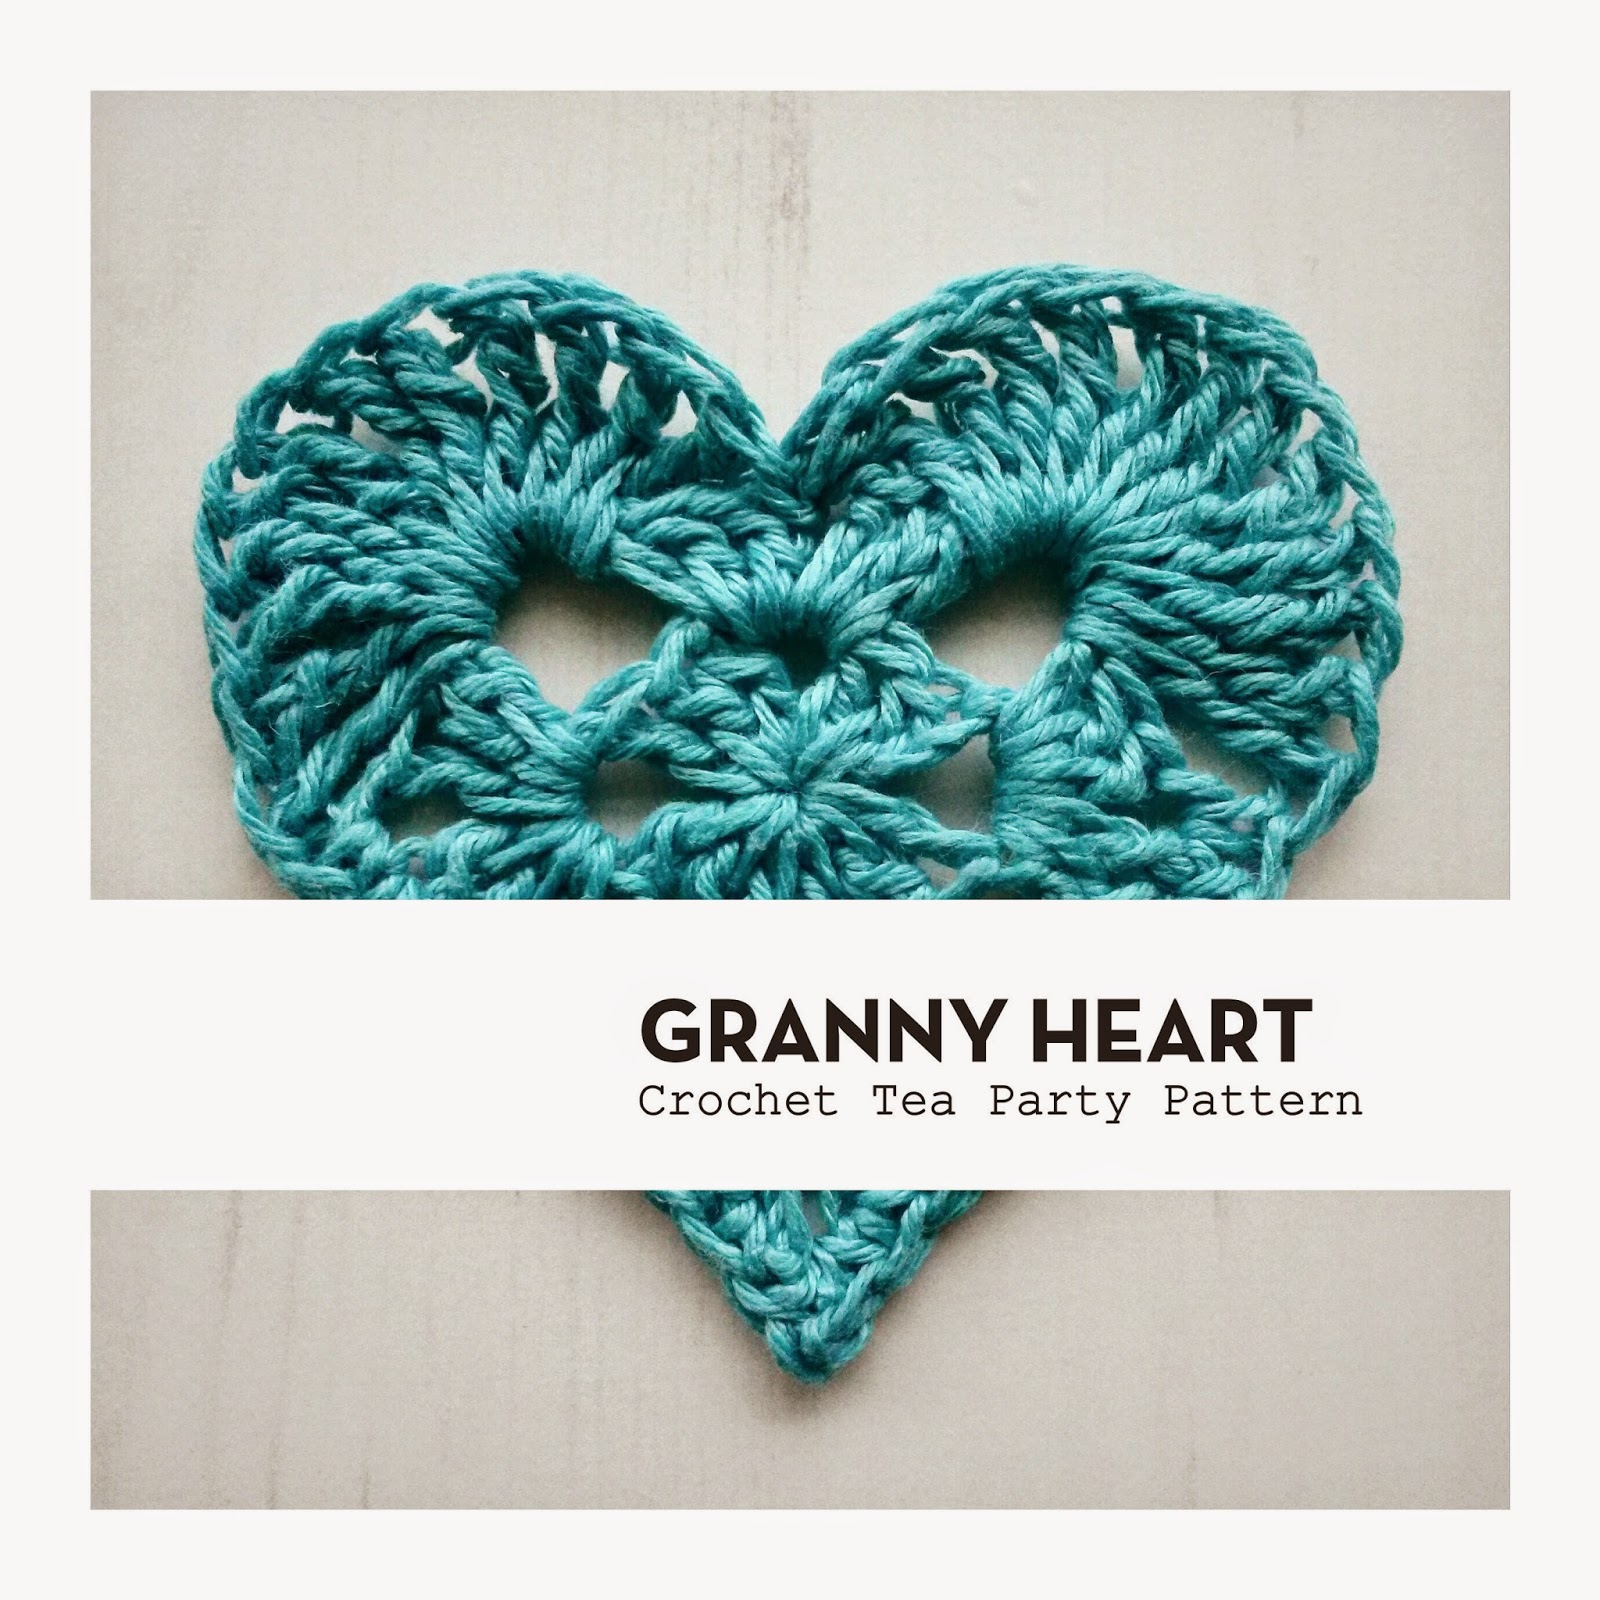 Crochet Tea Party :: Granny Heart Pattern